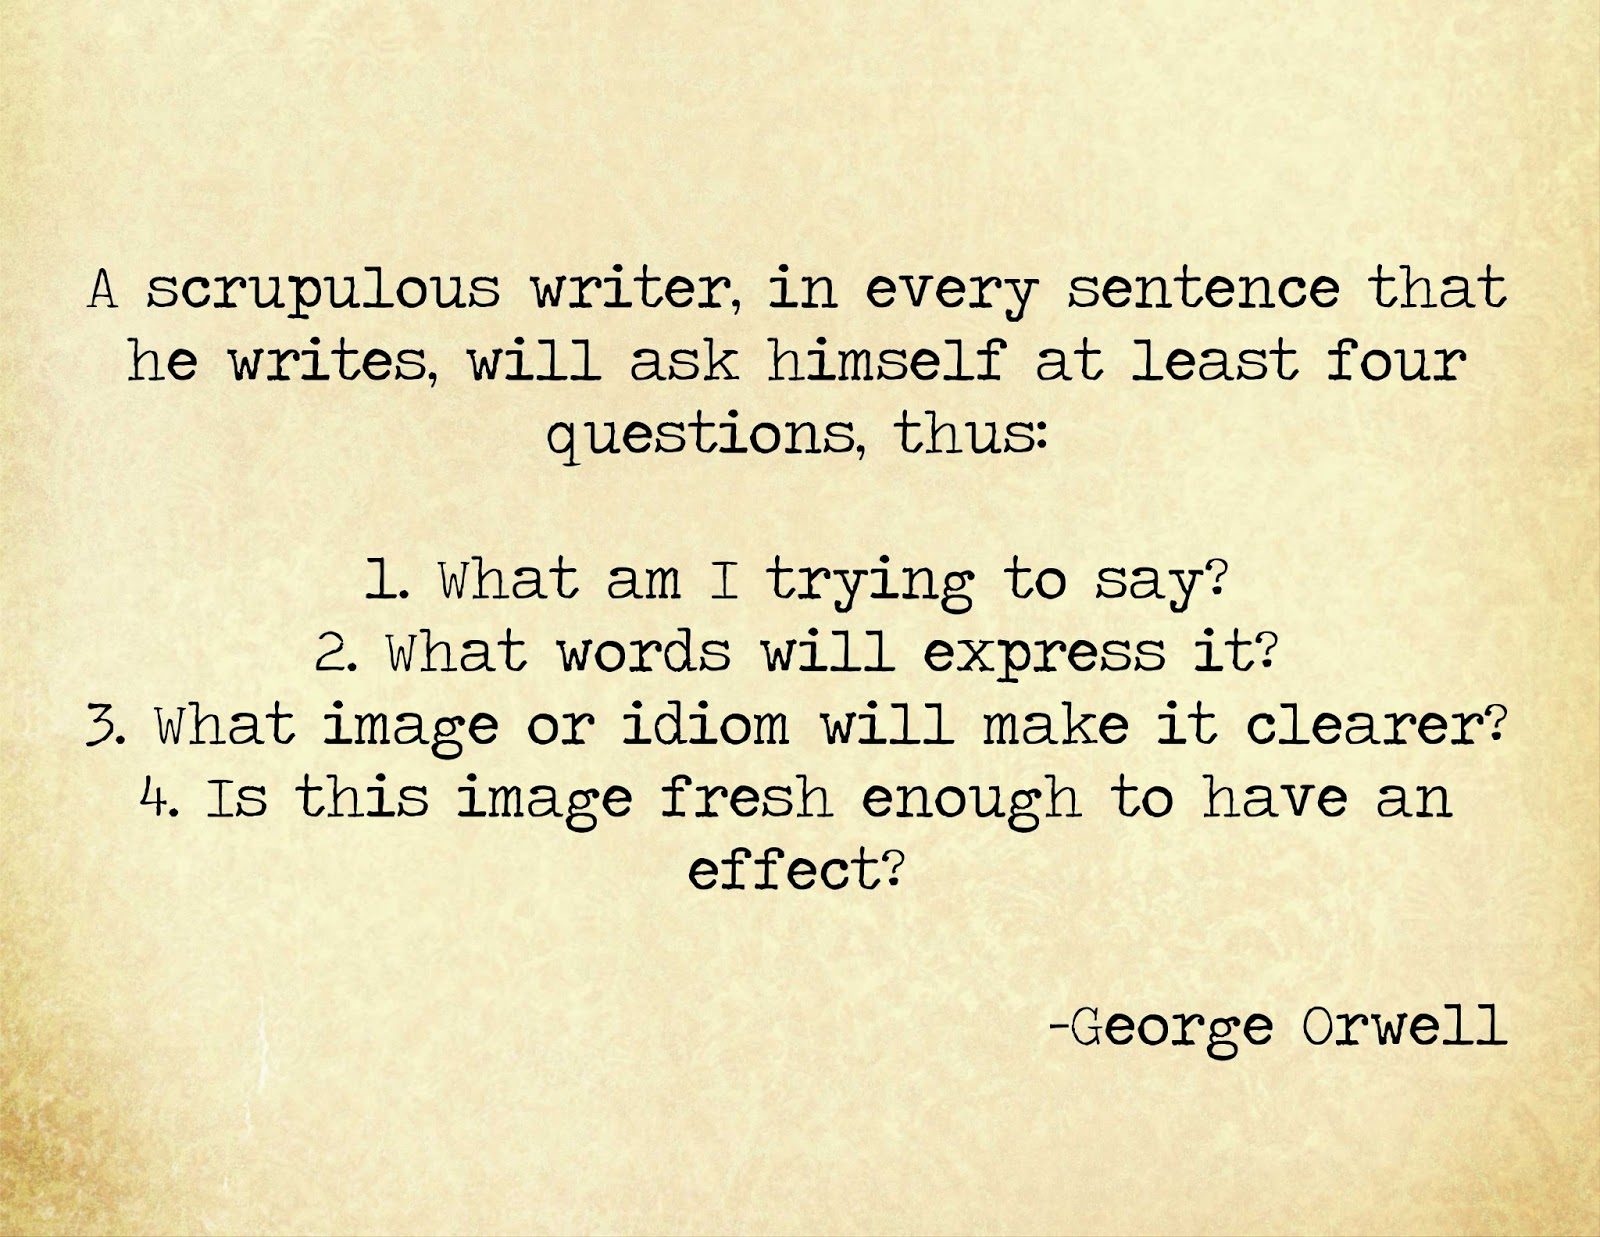 george orwell quotes on writing